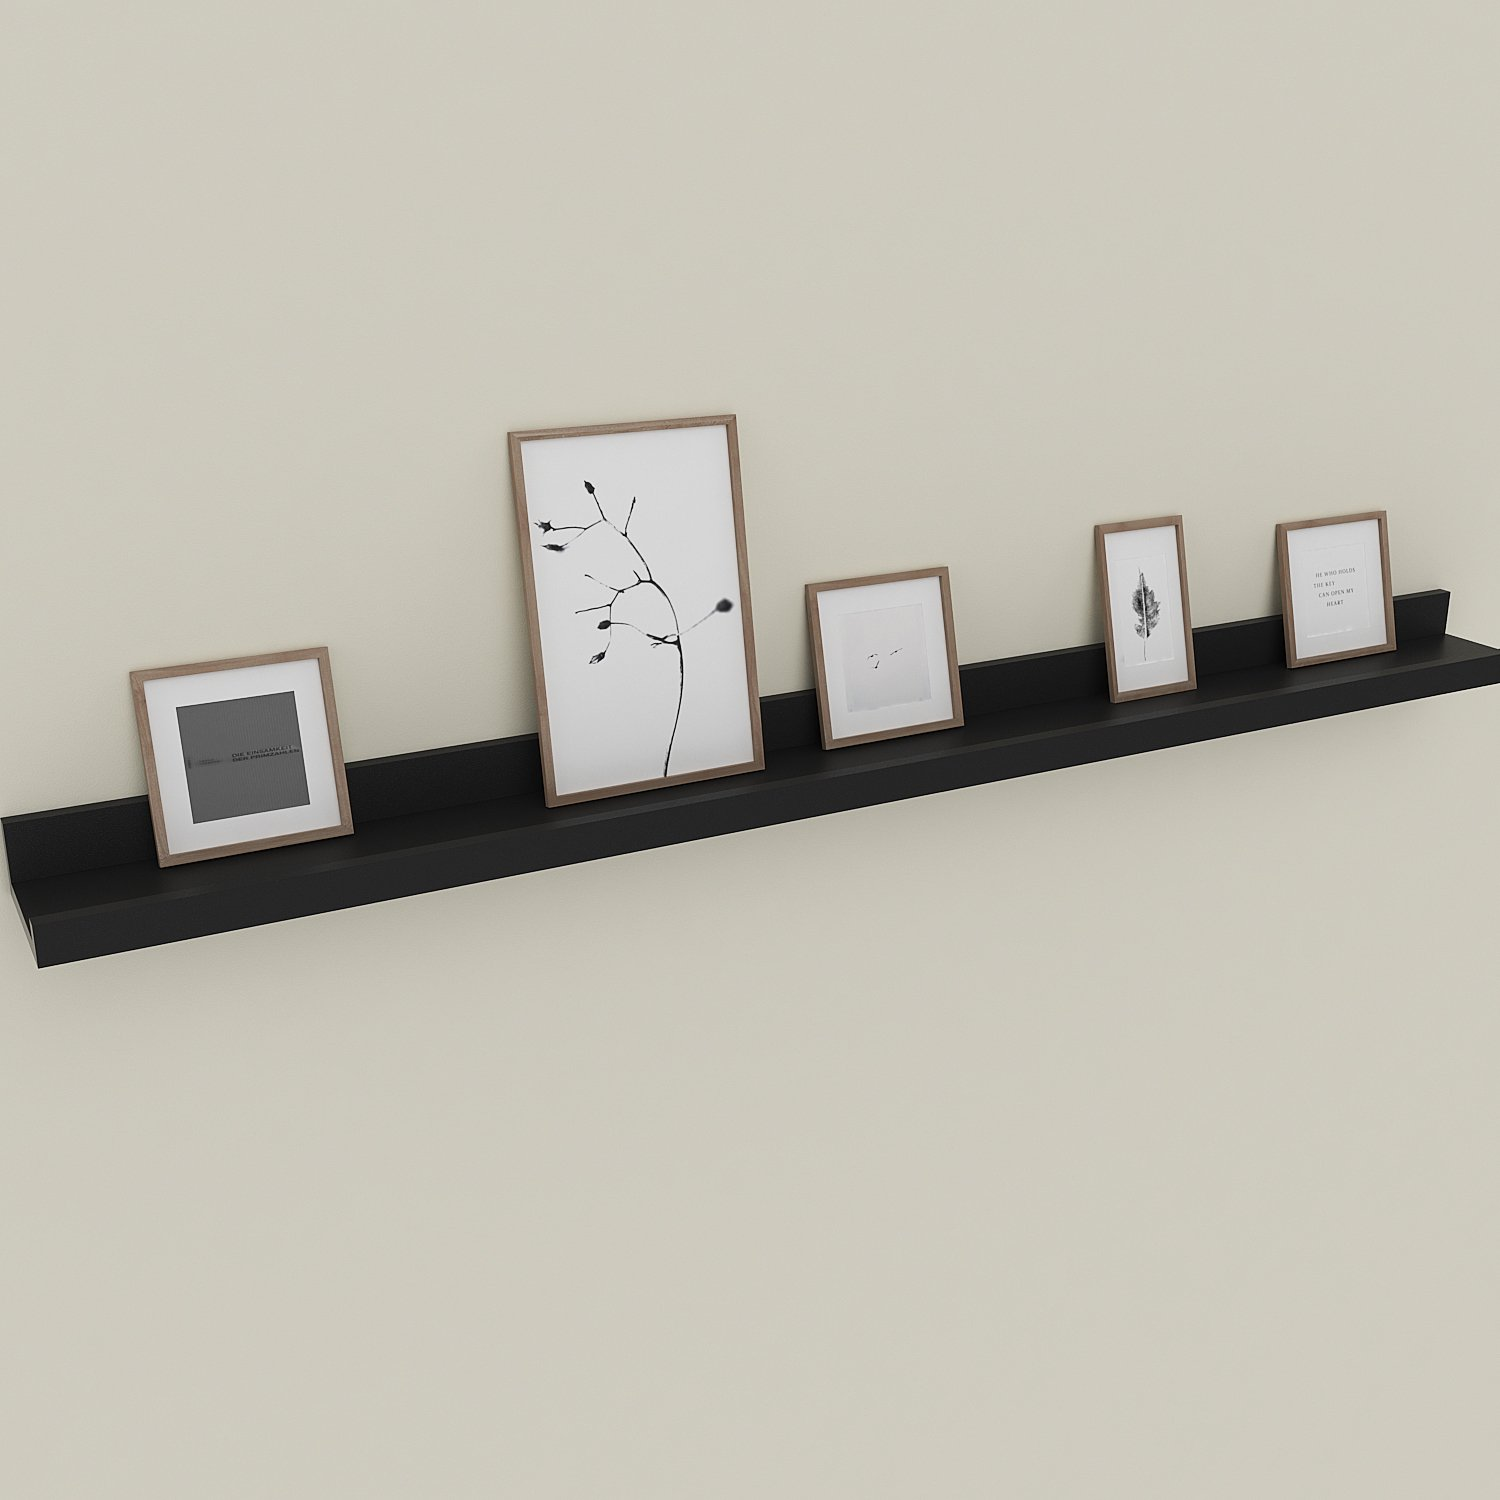 floating ture ledge display wall mount shelf for shelves frames book black home kitchen and brackets large glass corner mountable coat rack solid wood inch wide building bathroom